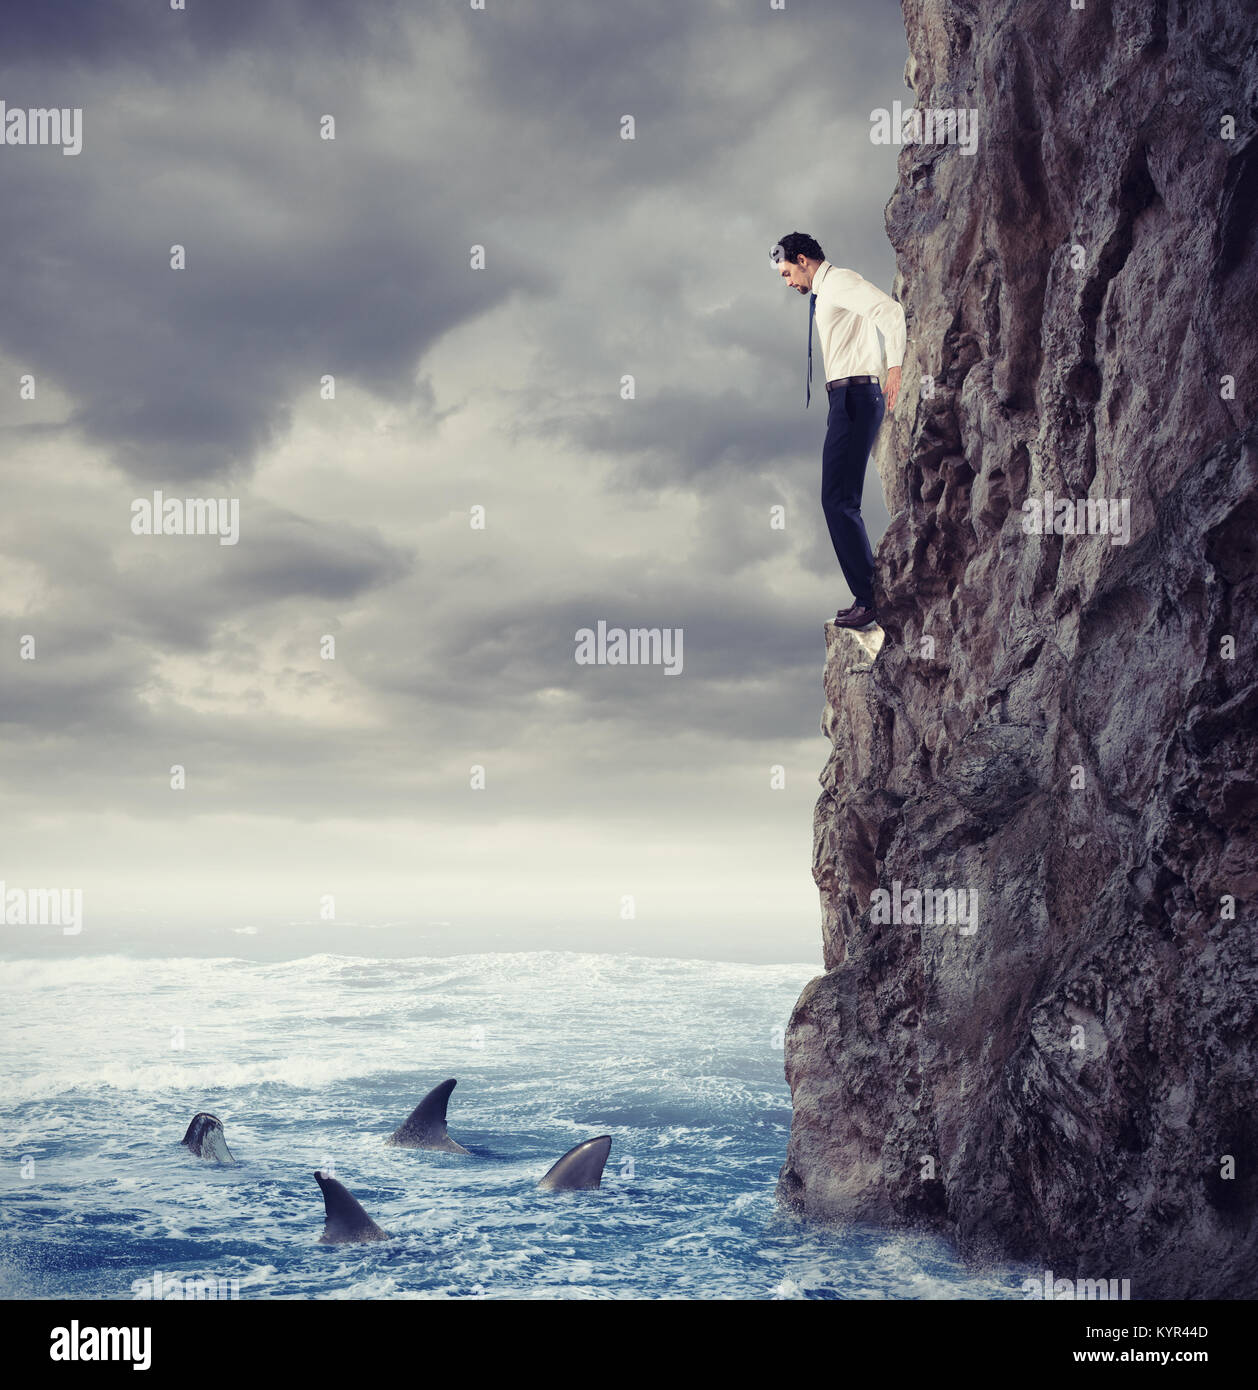 Businessman is likely to fall into the sea with shark. Risks and difficulties concept - Stock Image